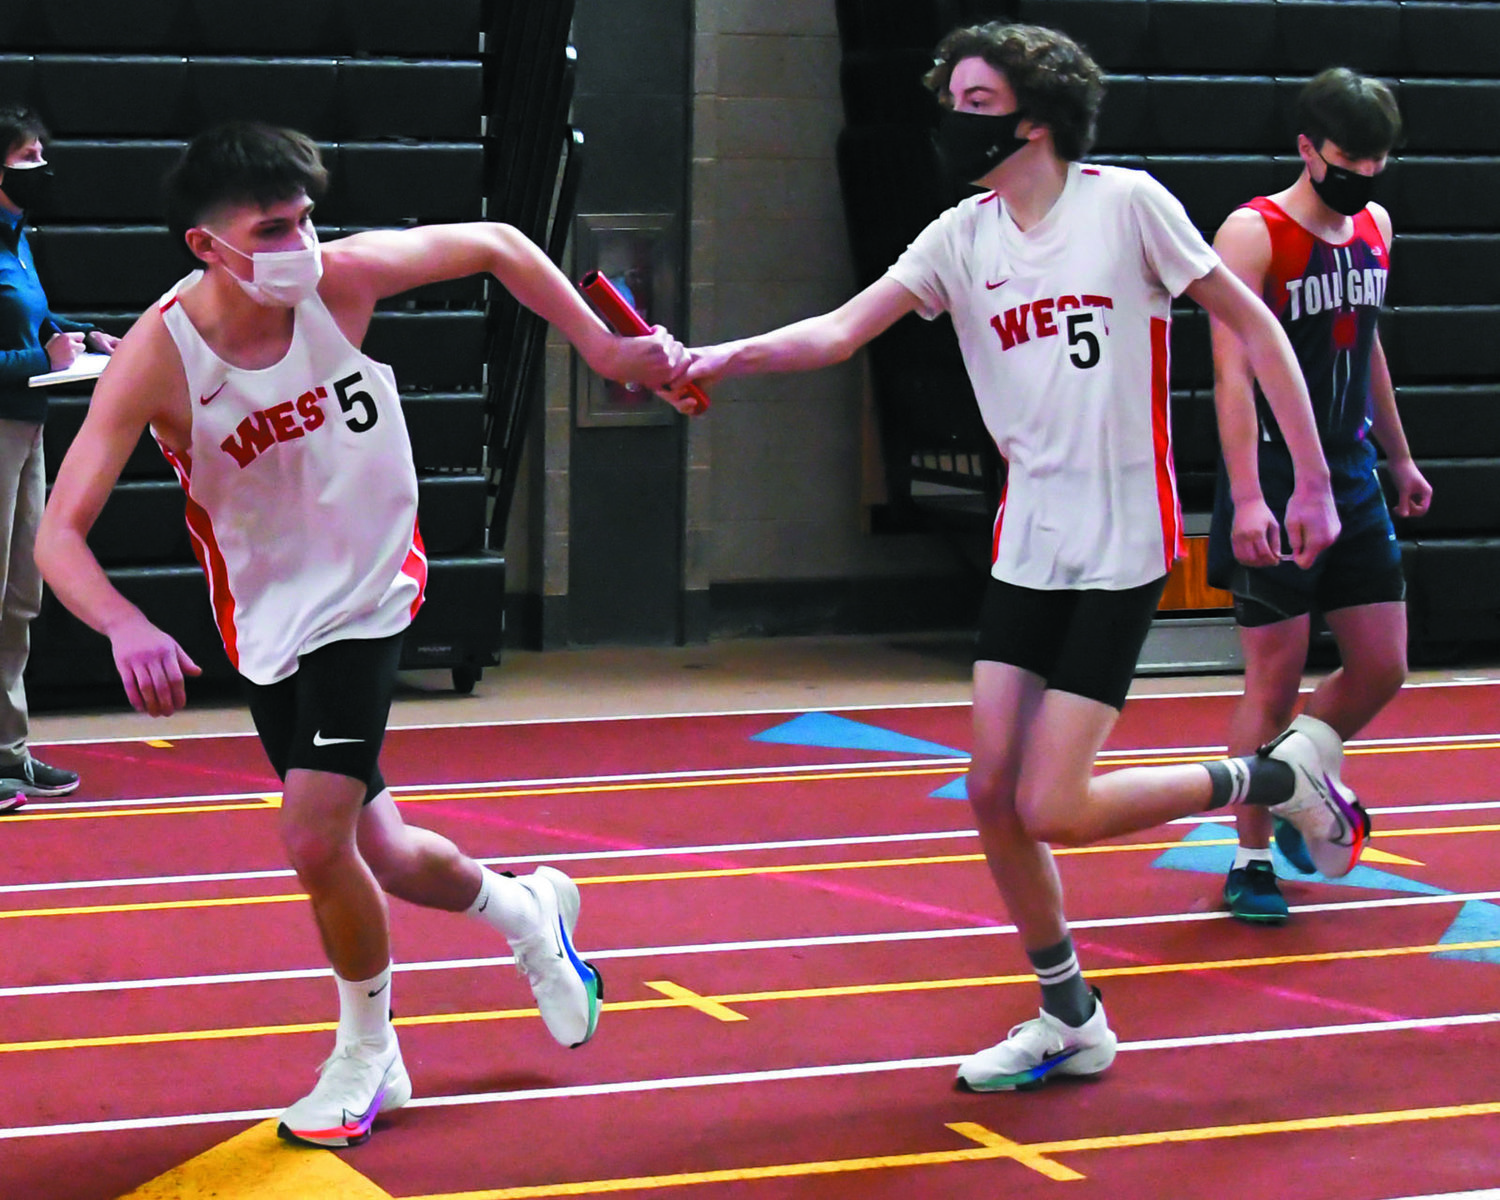 PASS THE BATON: Cranston West's Kris Degaitas and Luke Schmidt pass the baton during one of the team's relay races